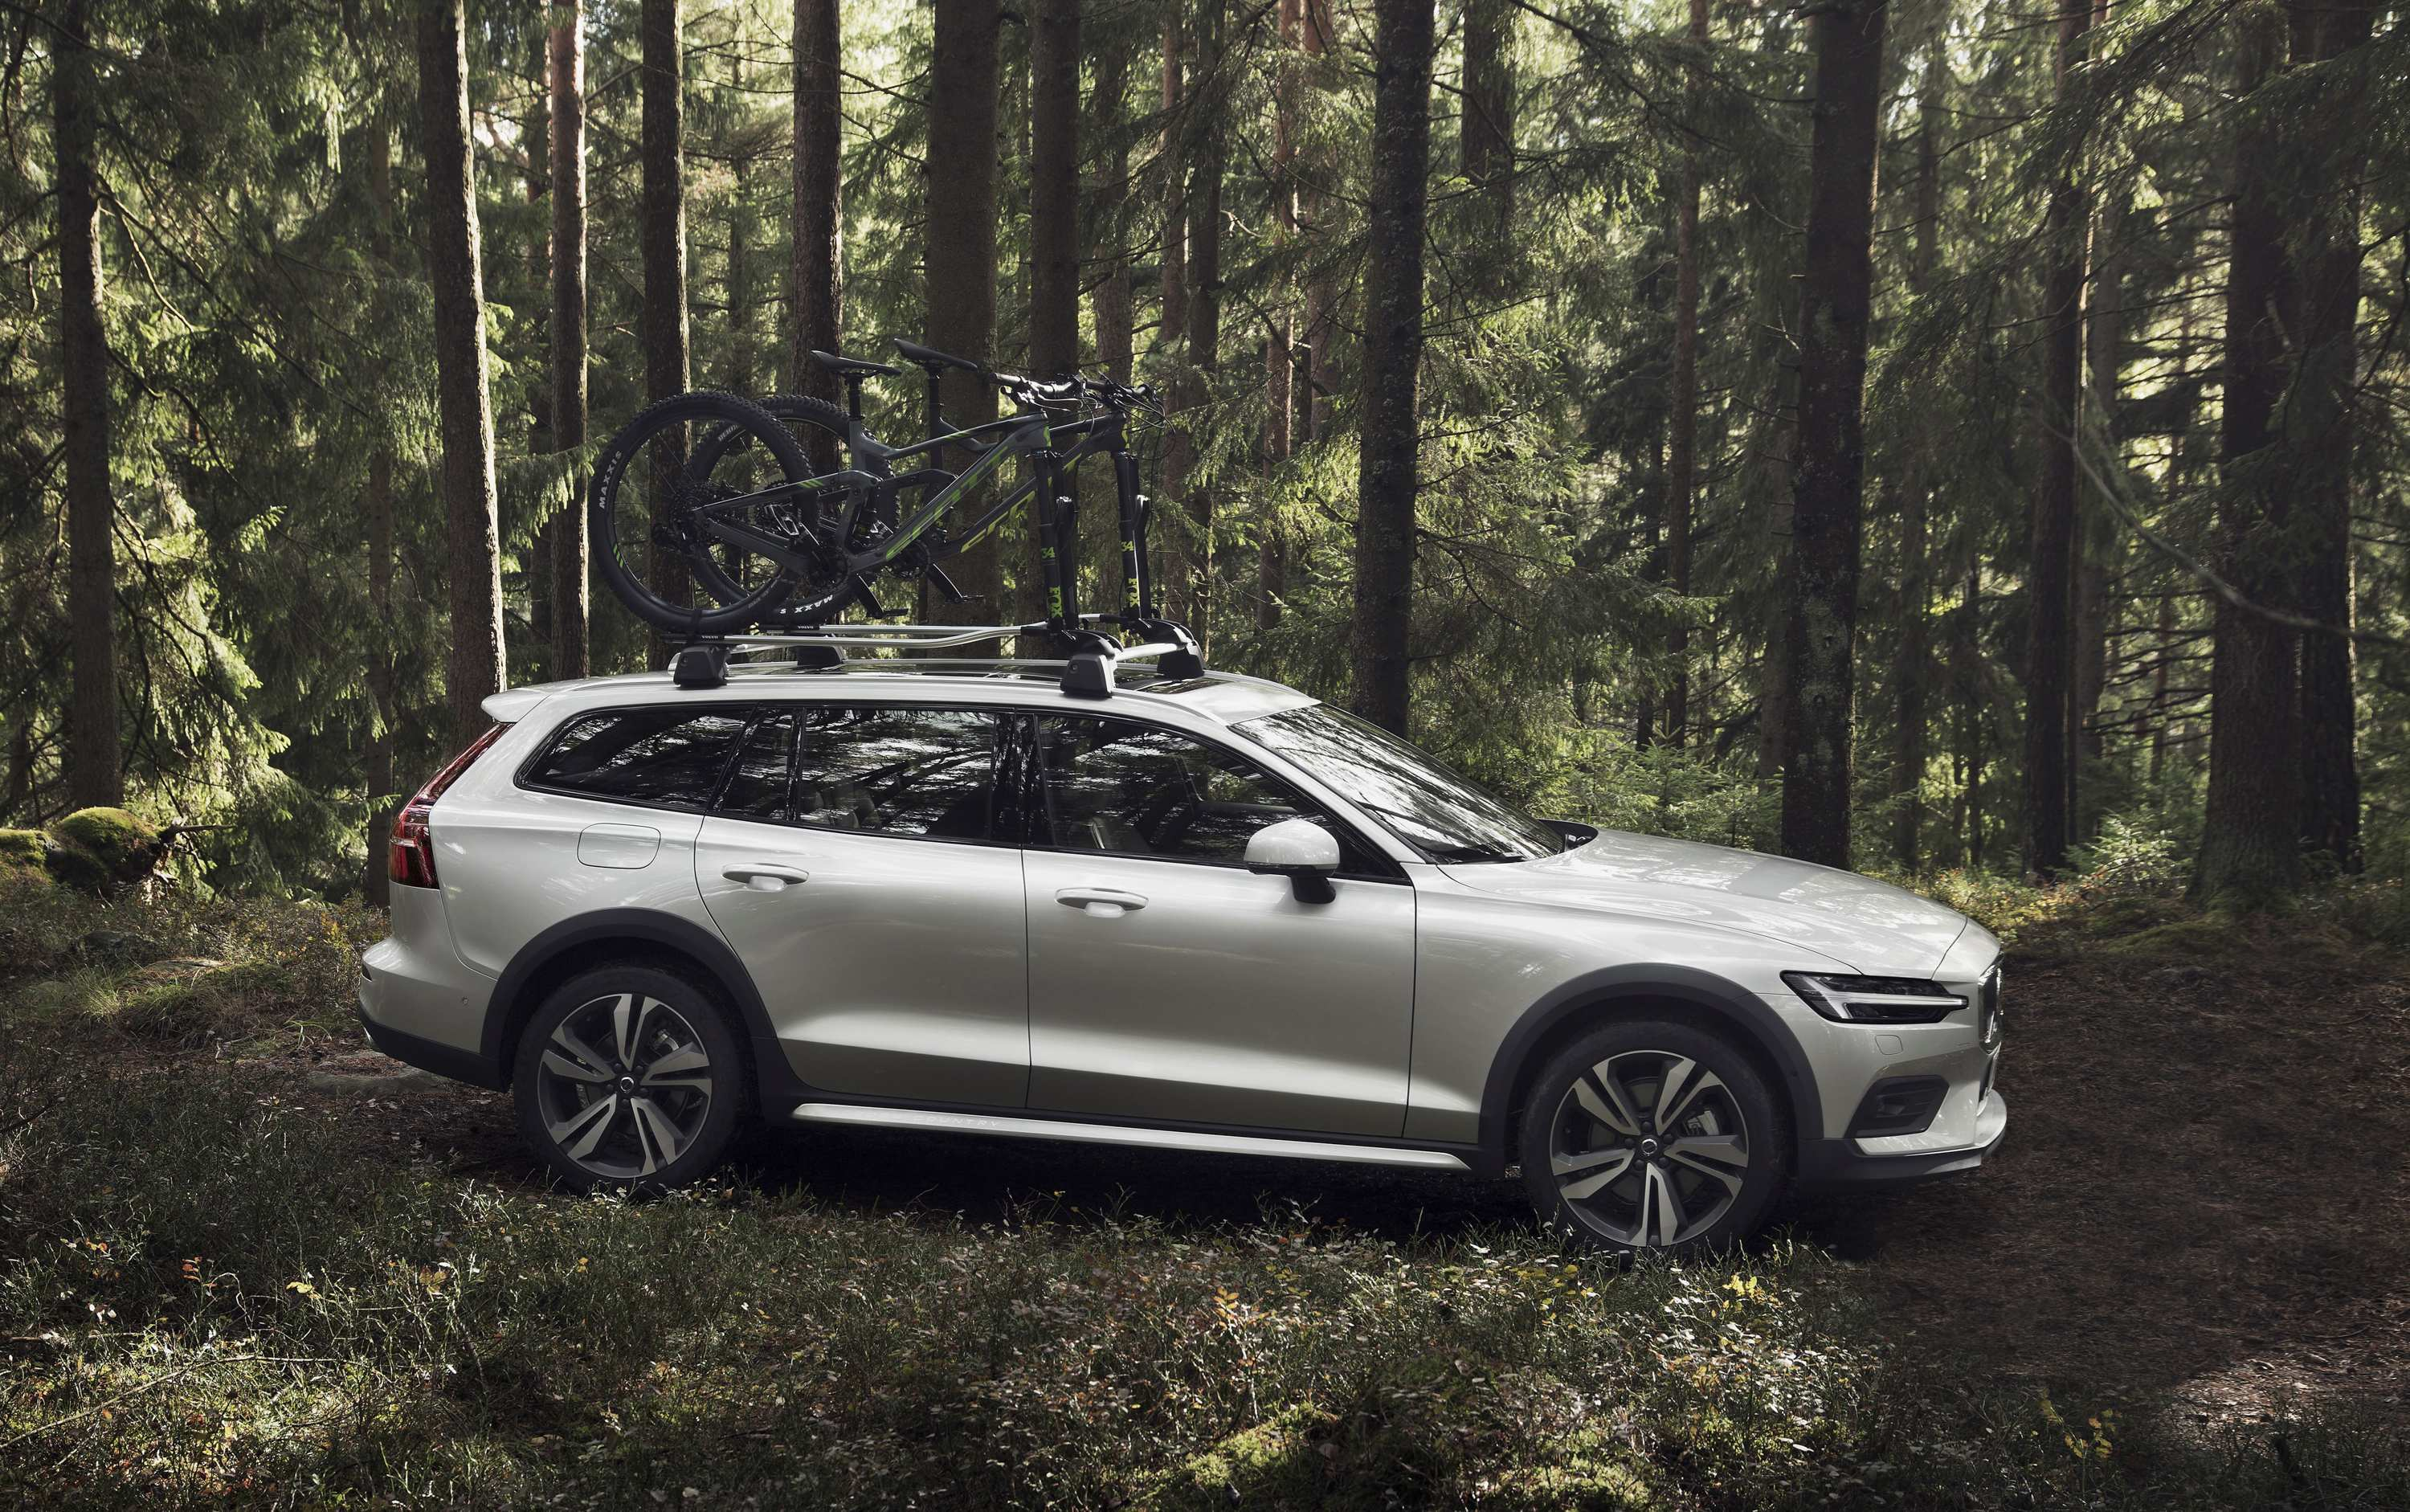 37 New 2019 Volvo V60 Cross Country Model with 2019 Volvo V60 Cross Country